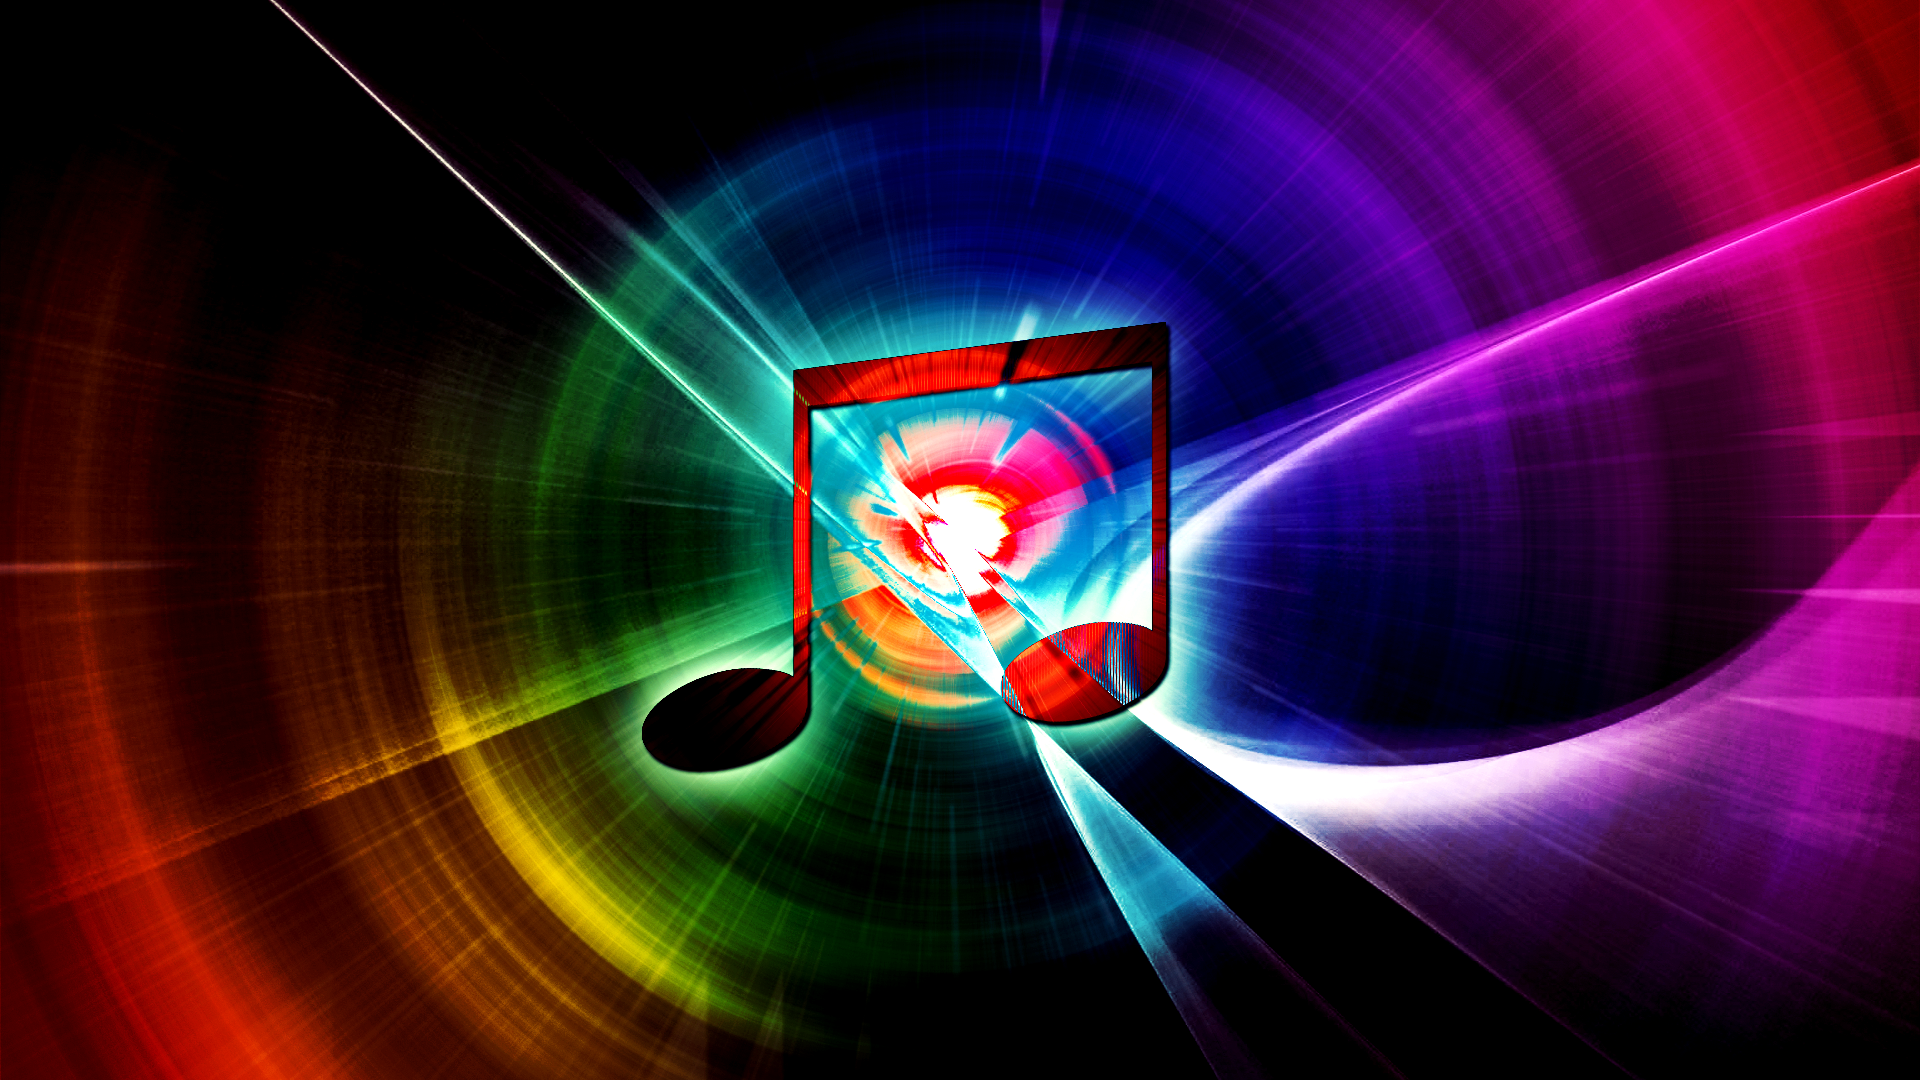 Awesome Music Wallpaper 1920x1080